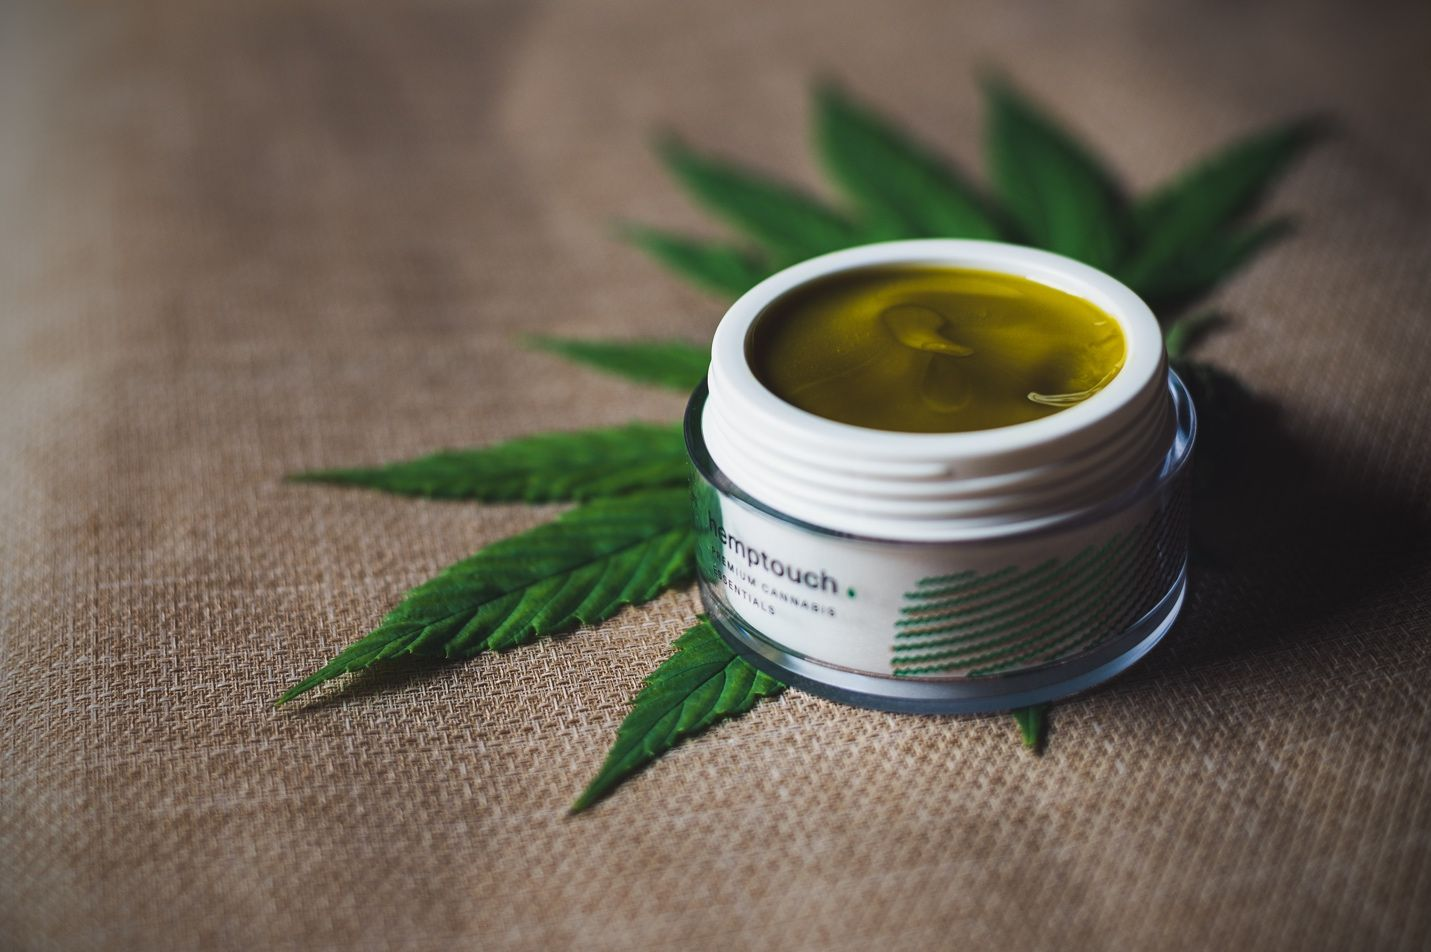 What's the Deal with Topical Cannabis?